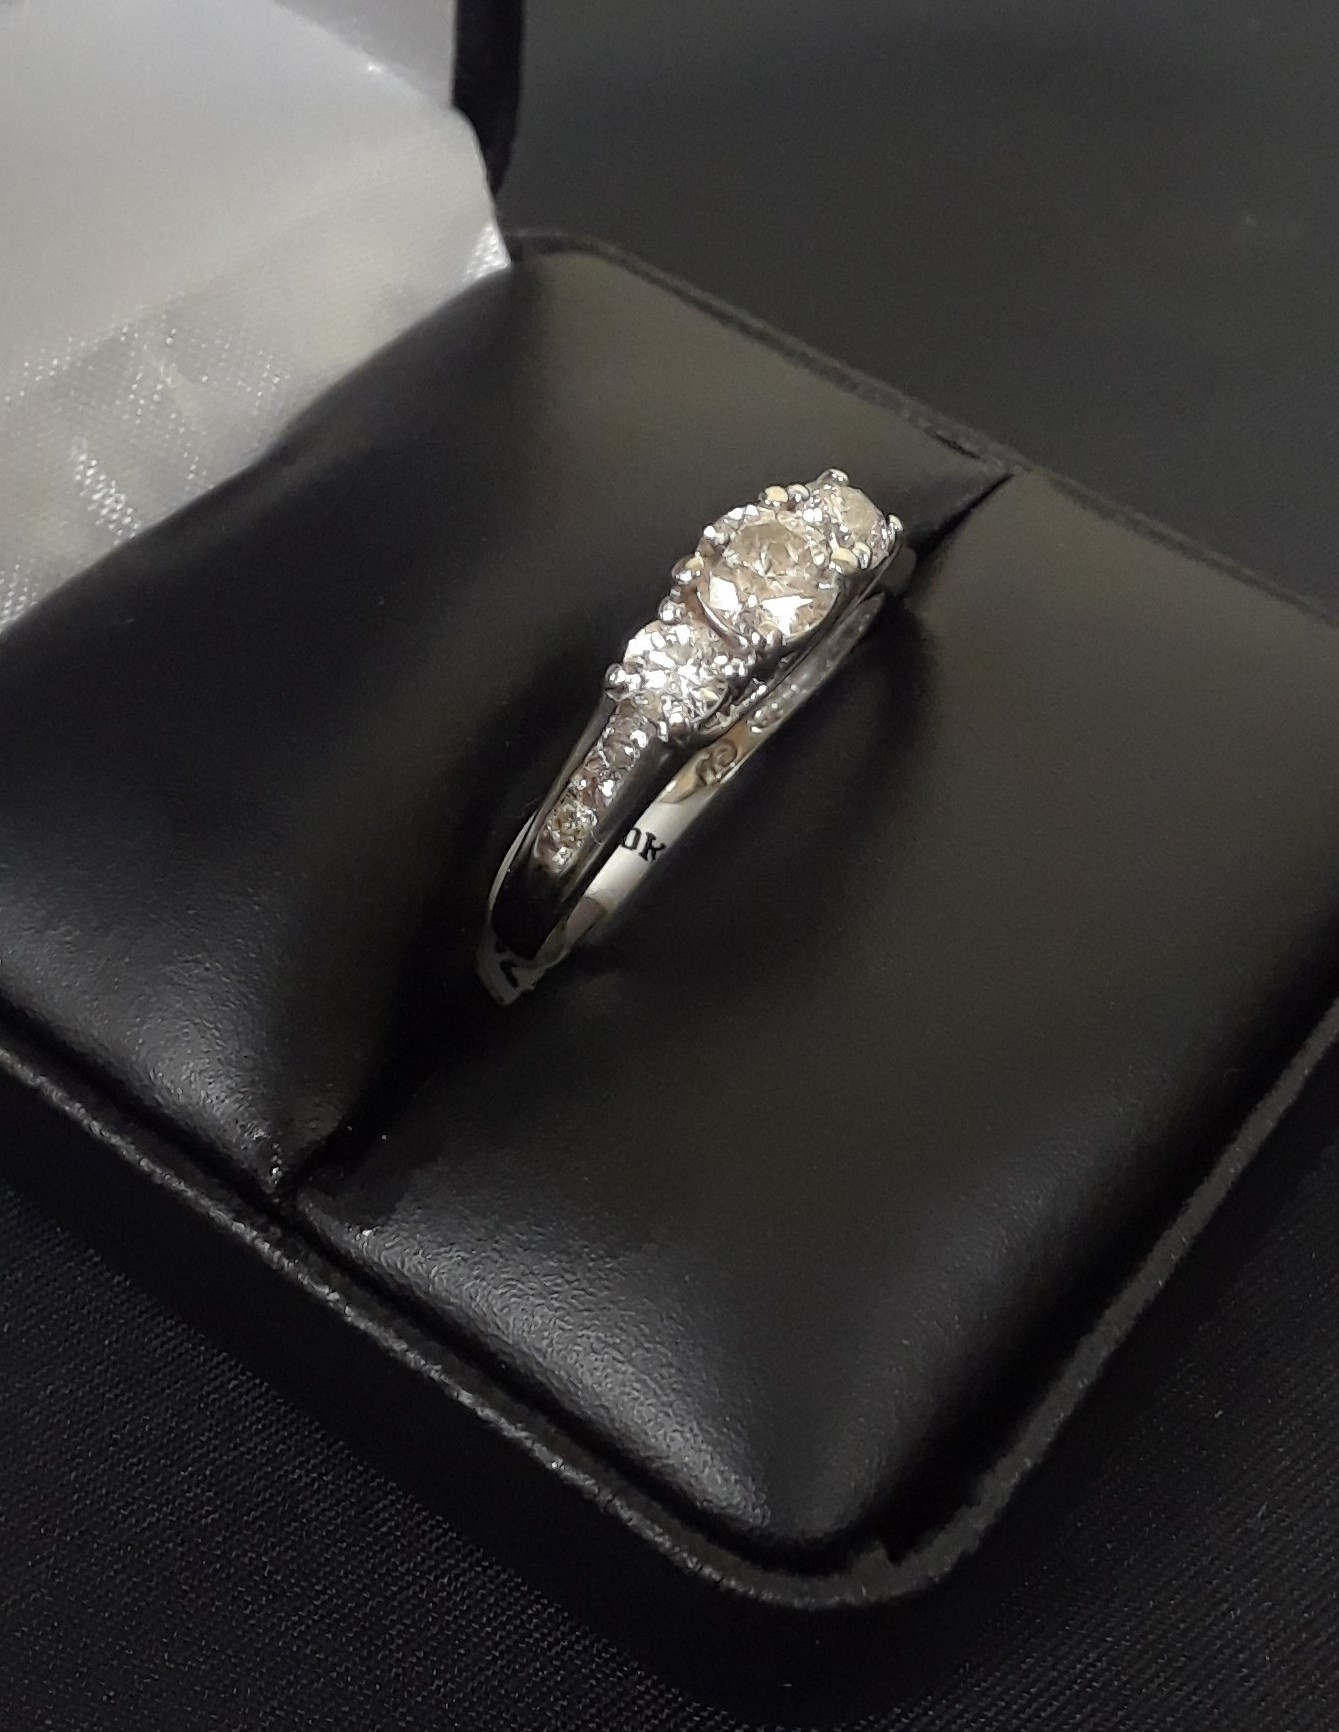 SIZE 7.5 10KT WHITE GOLD DIAMOND RING